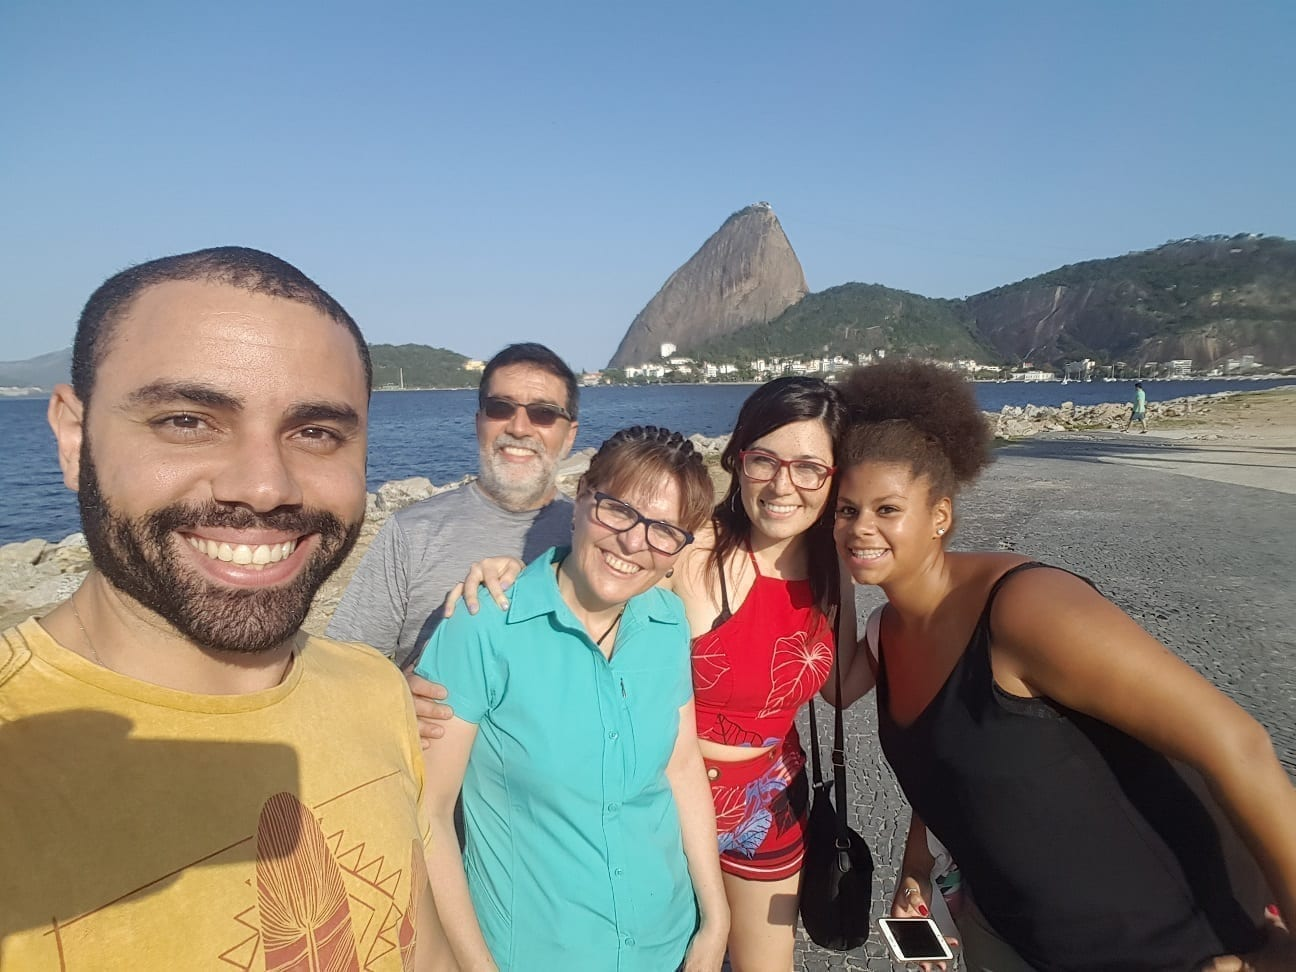 Selfie with the Sugarloaf! Rio of Saint Sebastian.